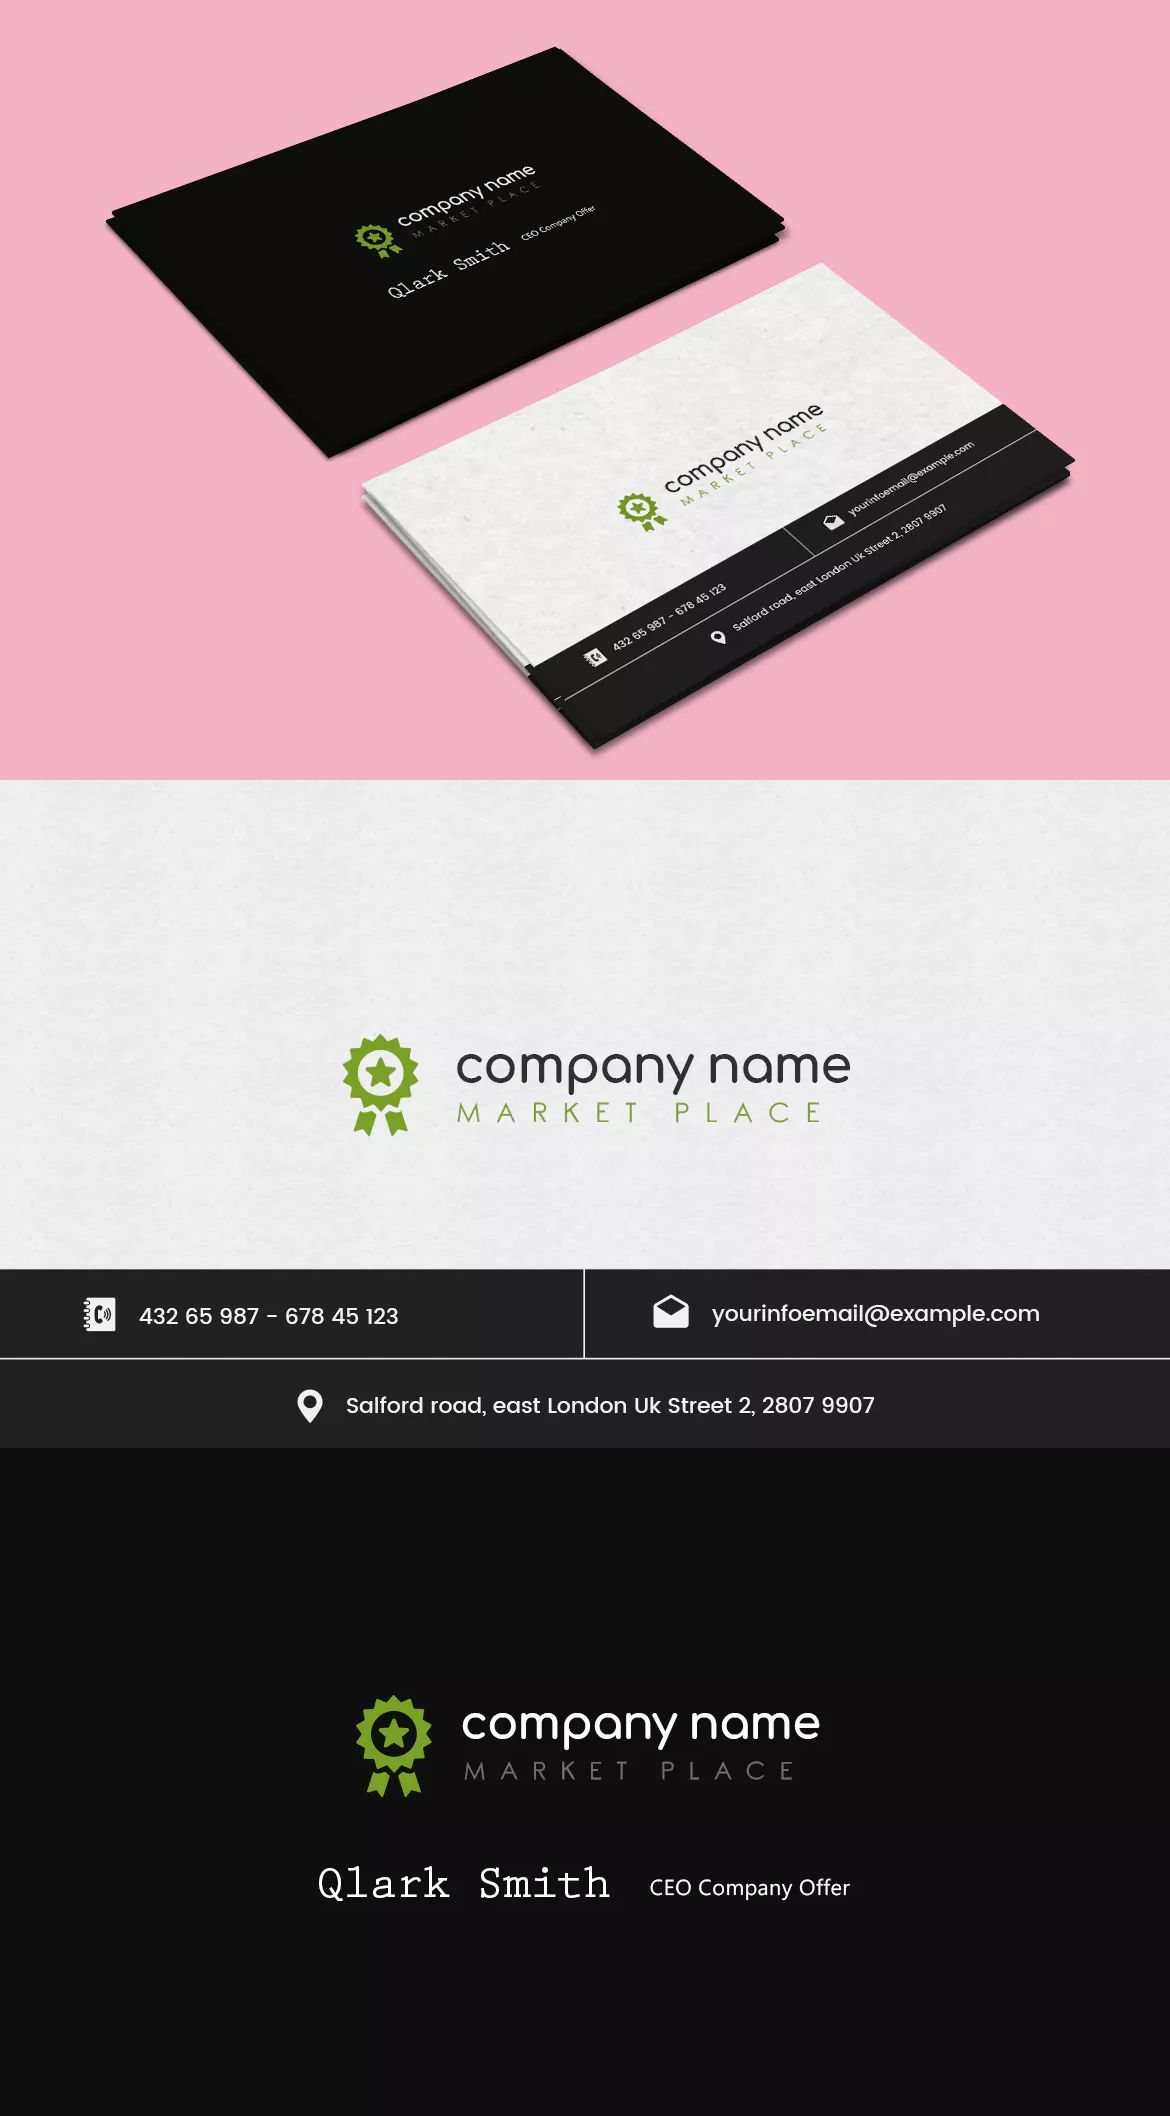 Company market business card template psd business card company market business card template psd reheart Image collections